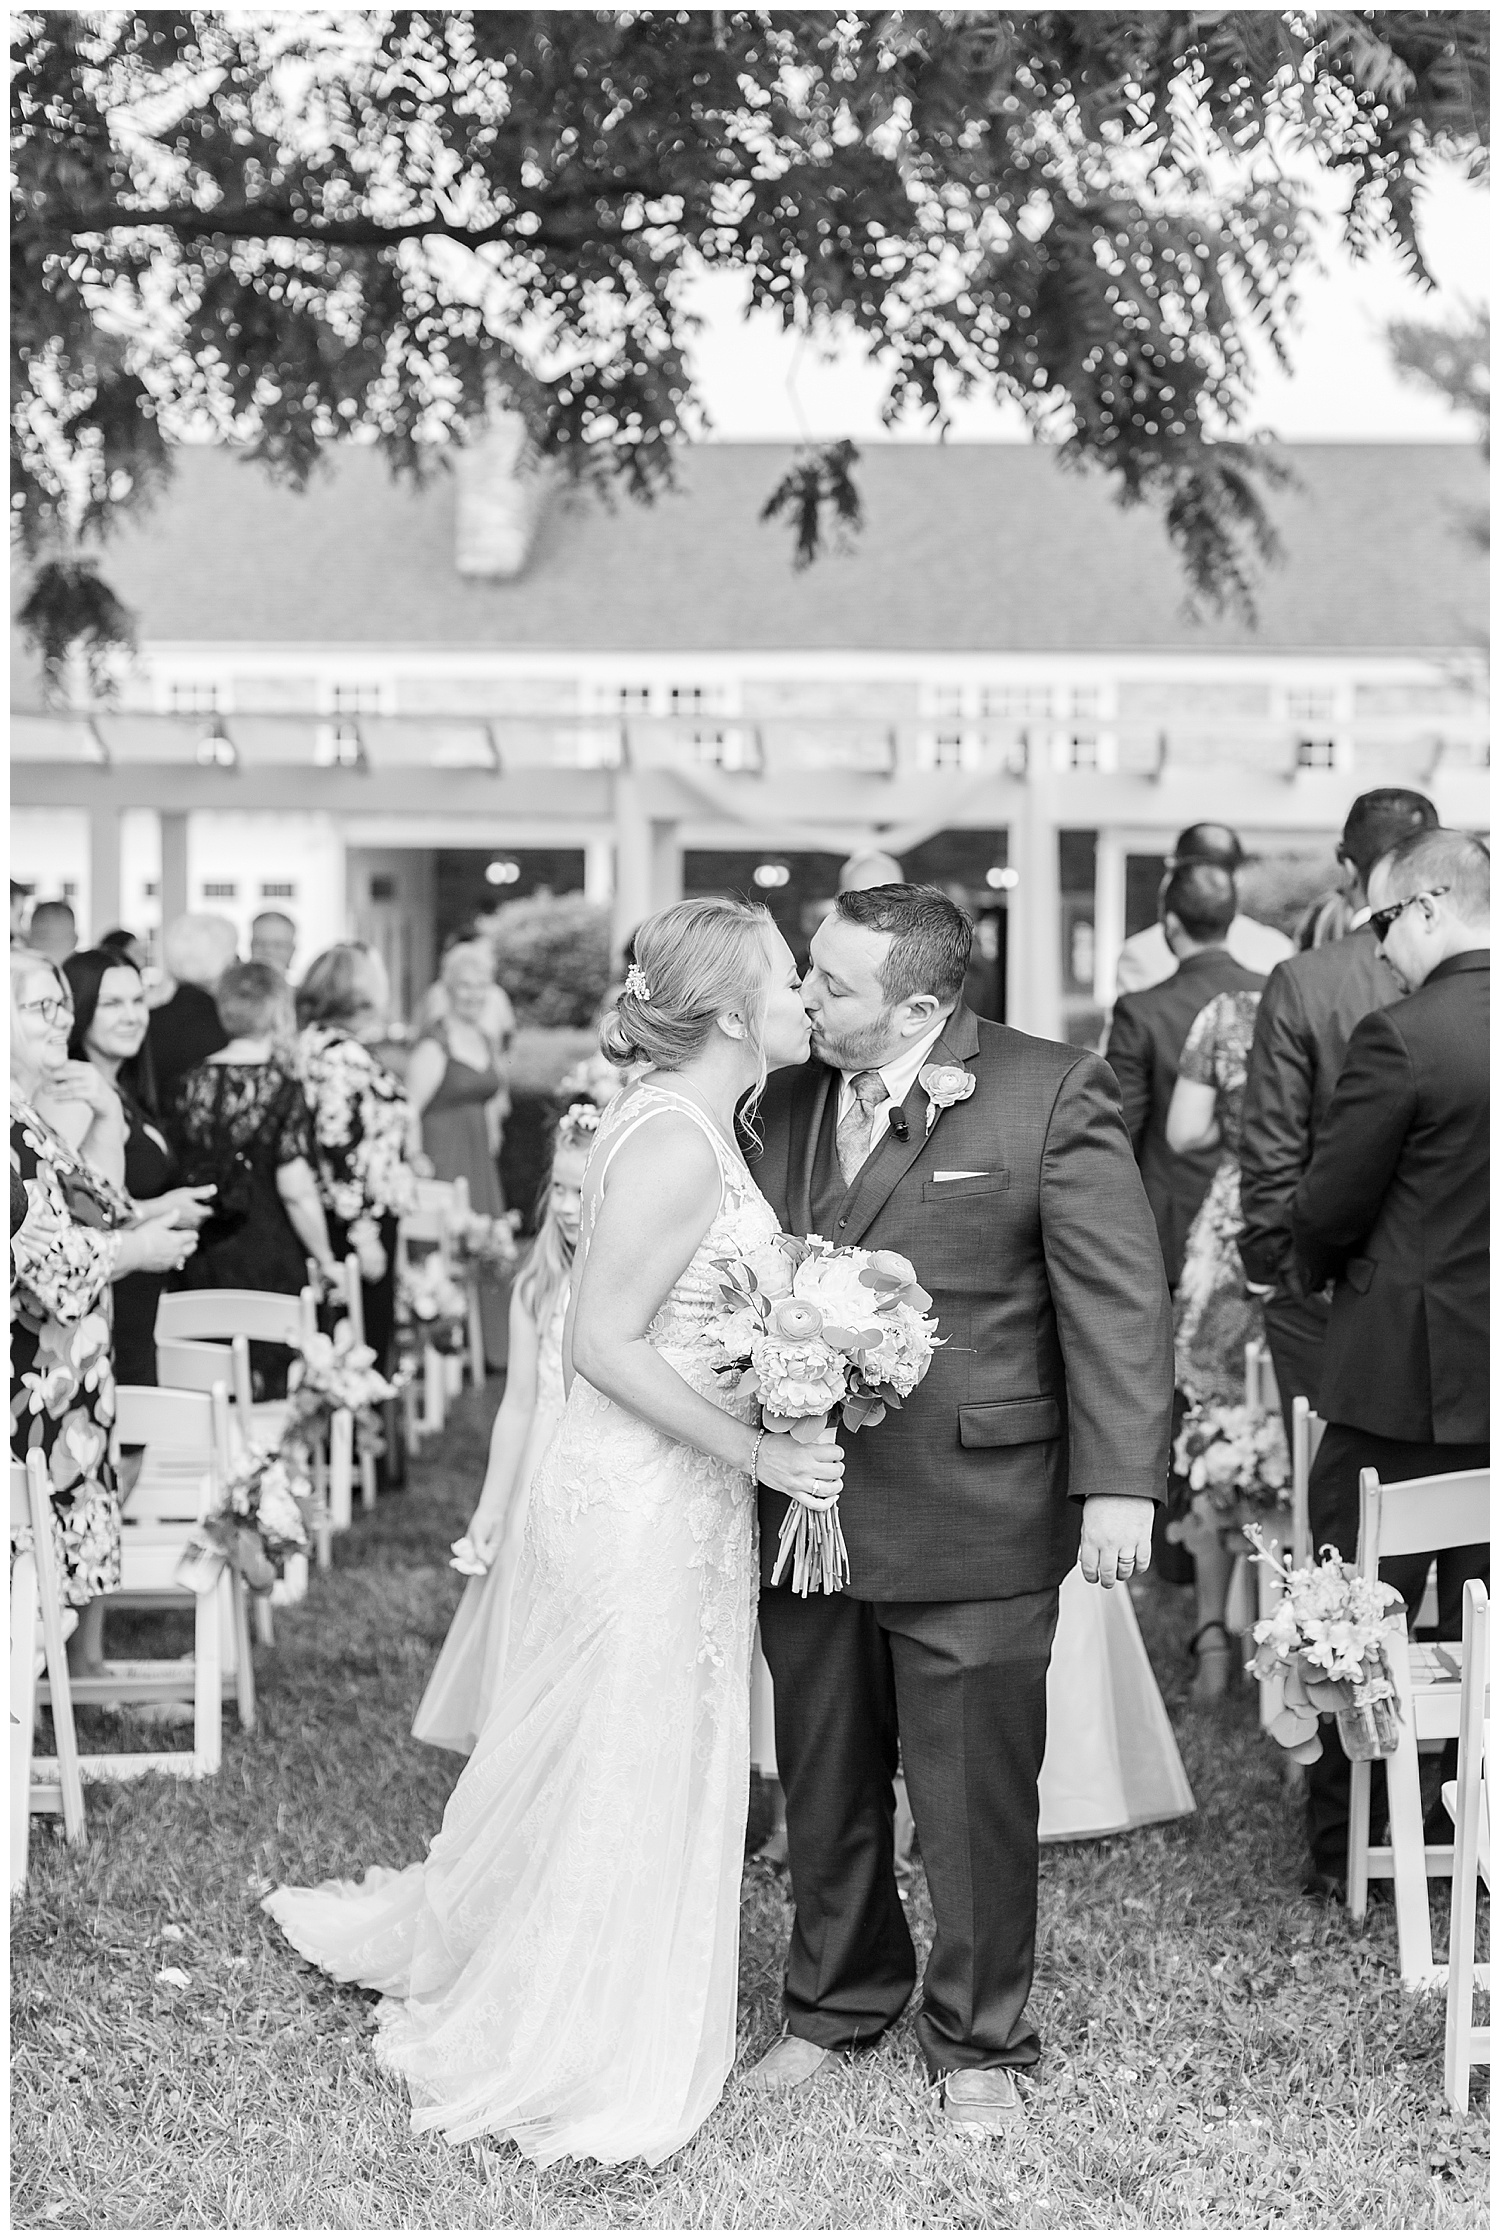 stone-manor-country-club-wedding-emily-belson-photography-78.jpg